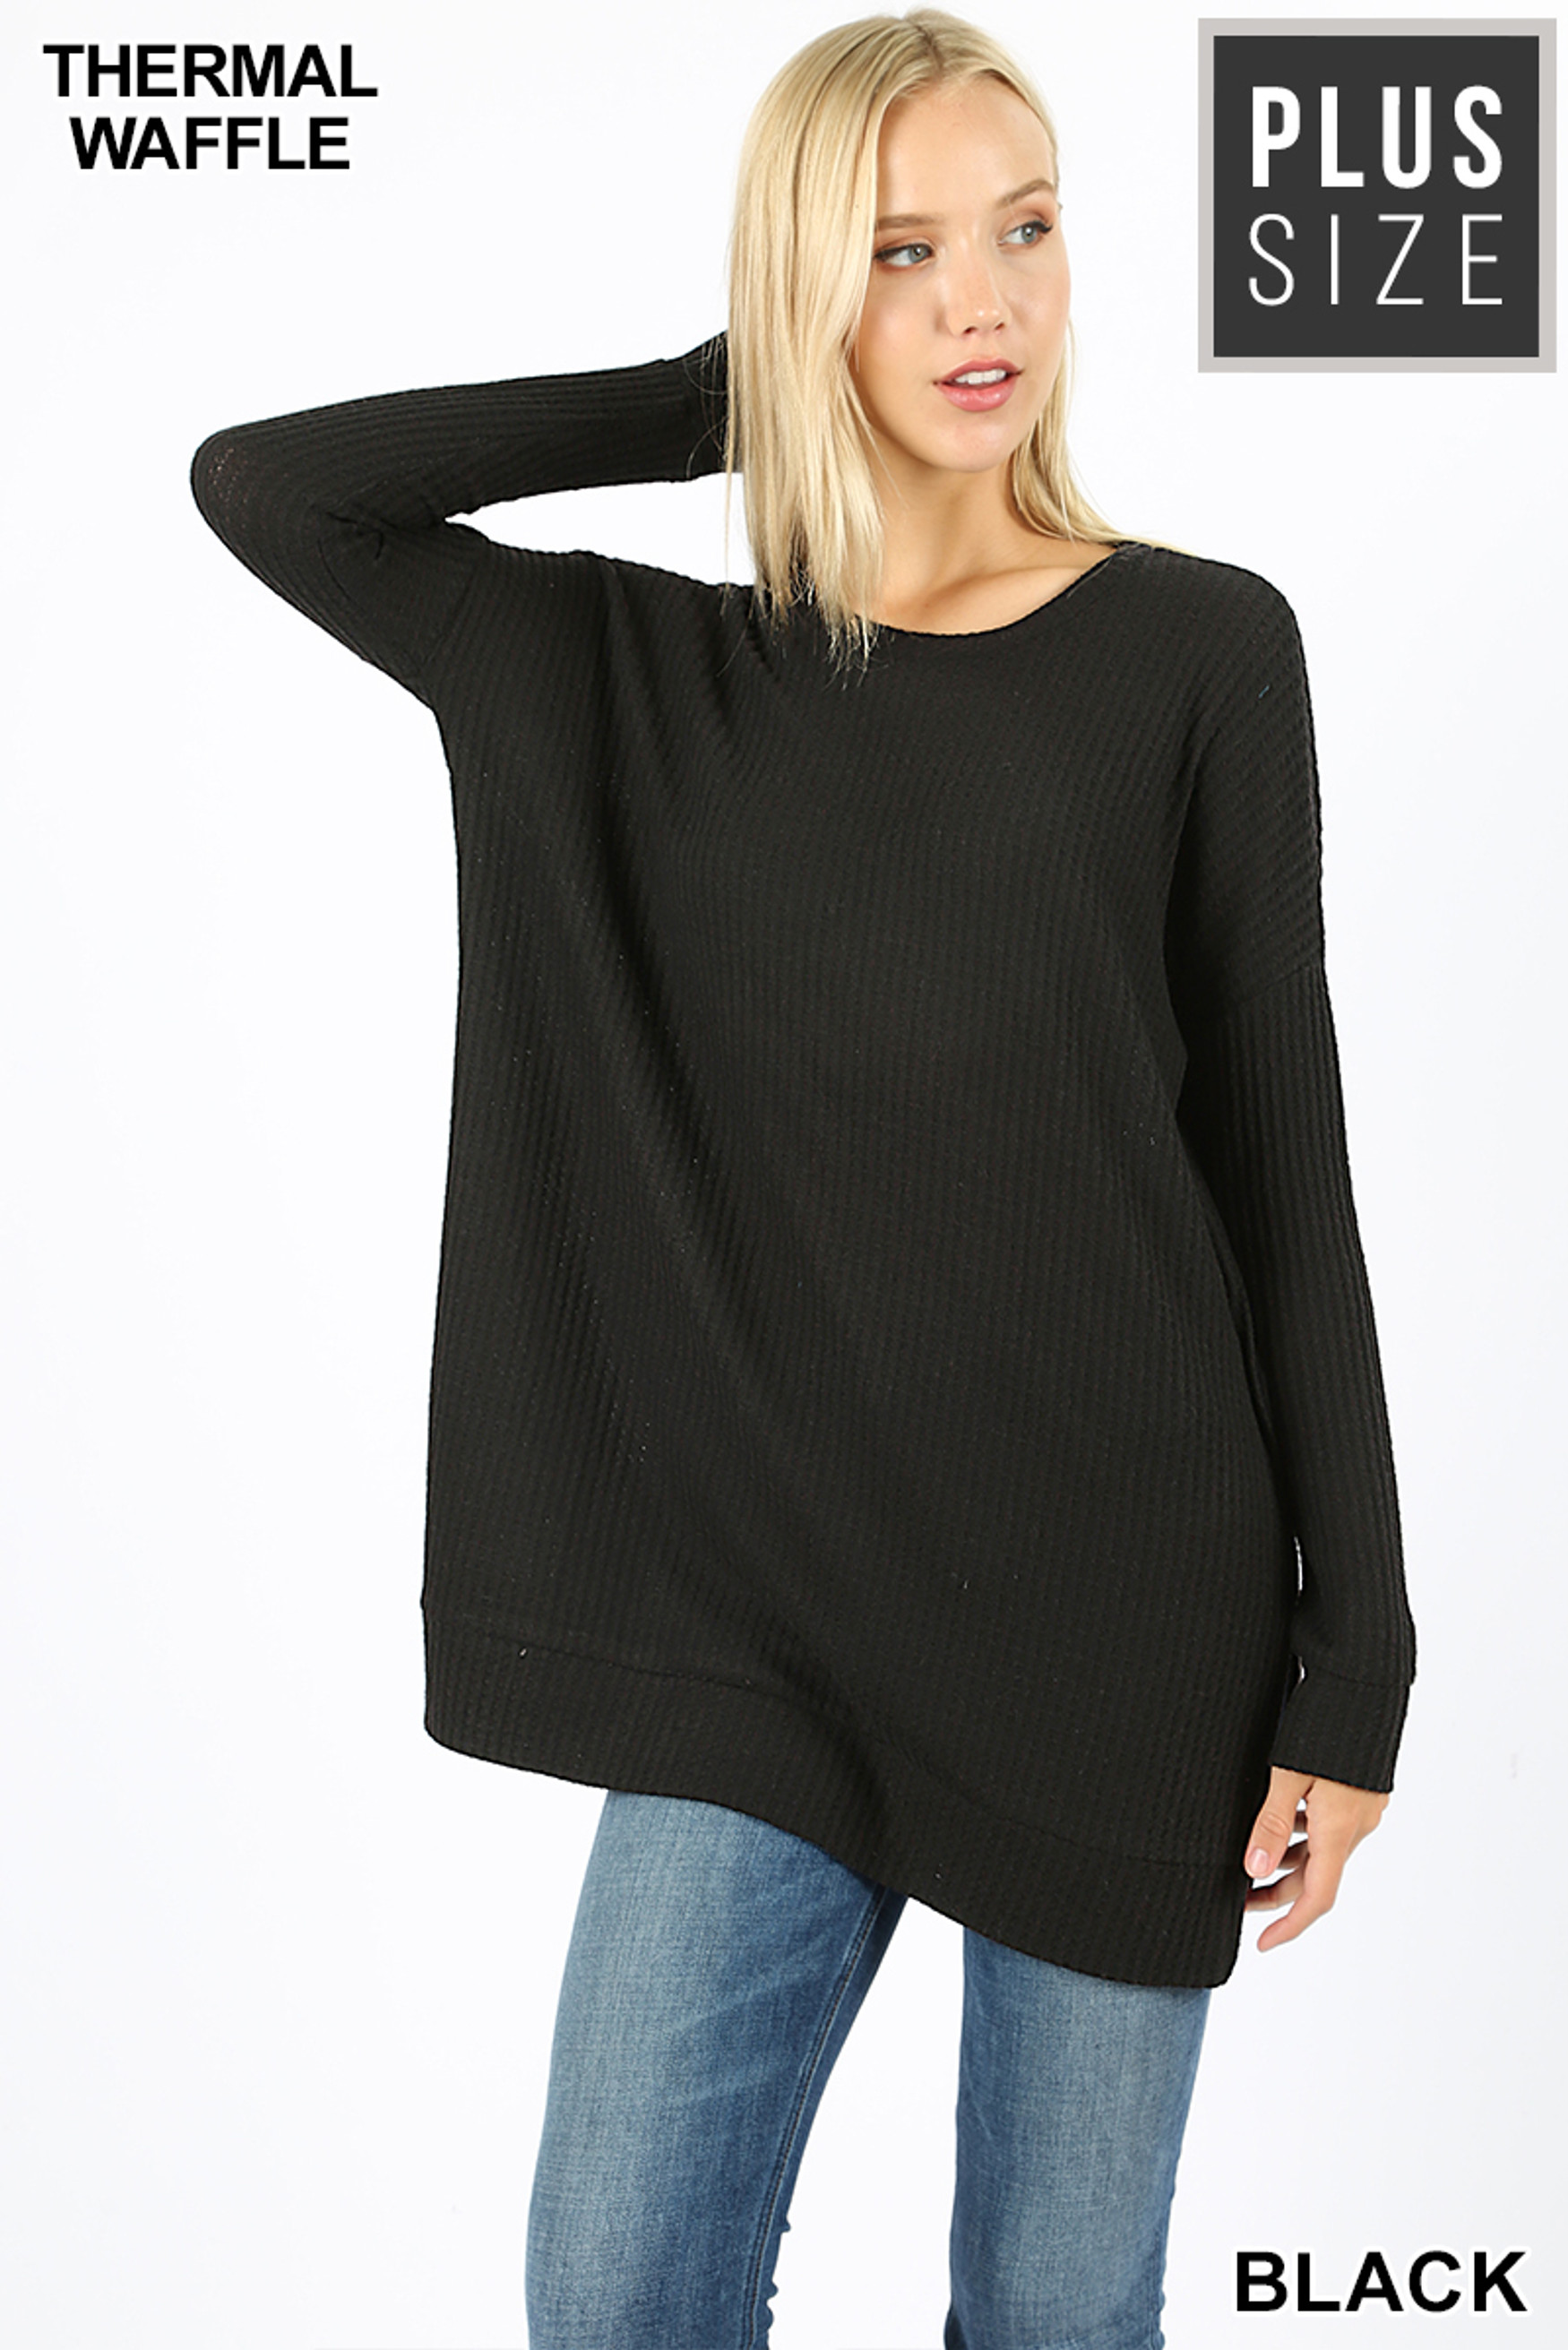 Front image of Black Brushed Thermal Waffle Knit Round Neck Plus Size Sweater